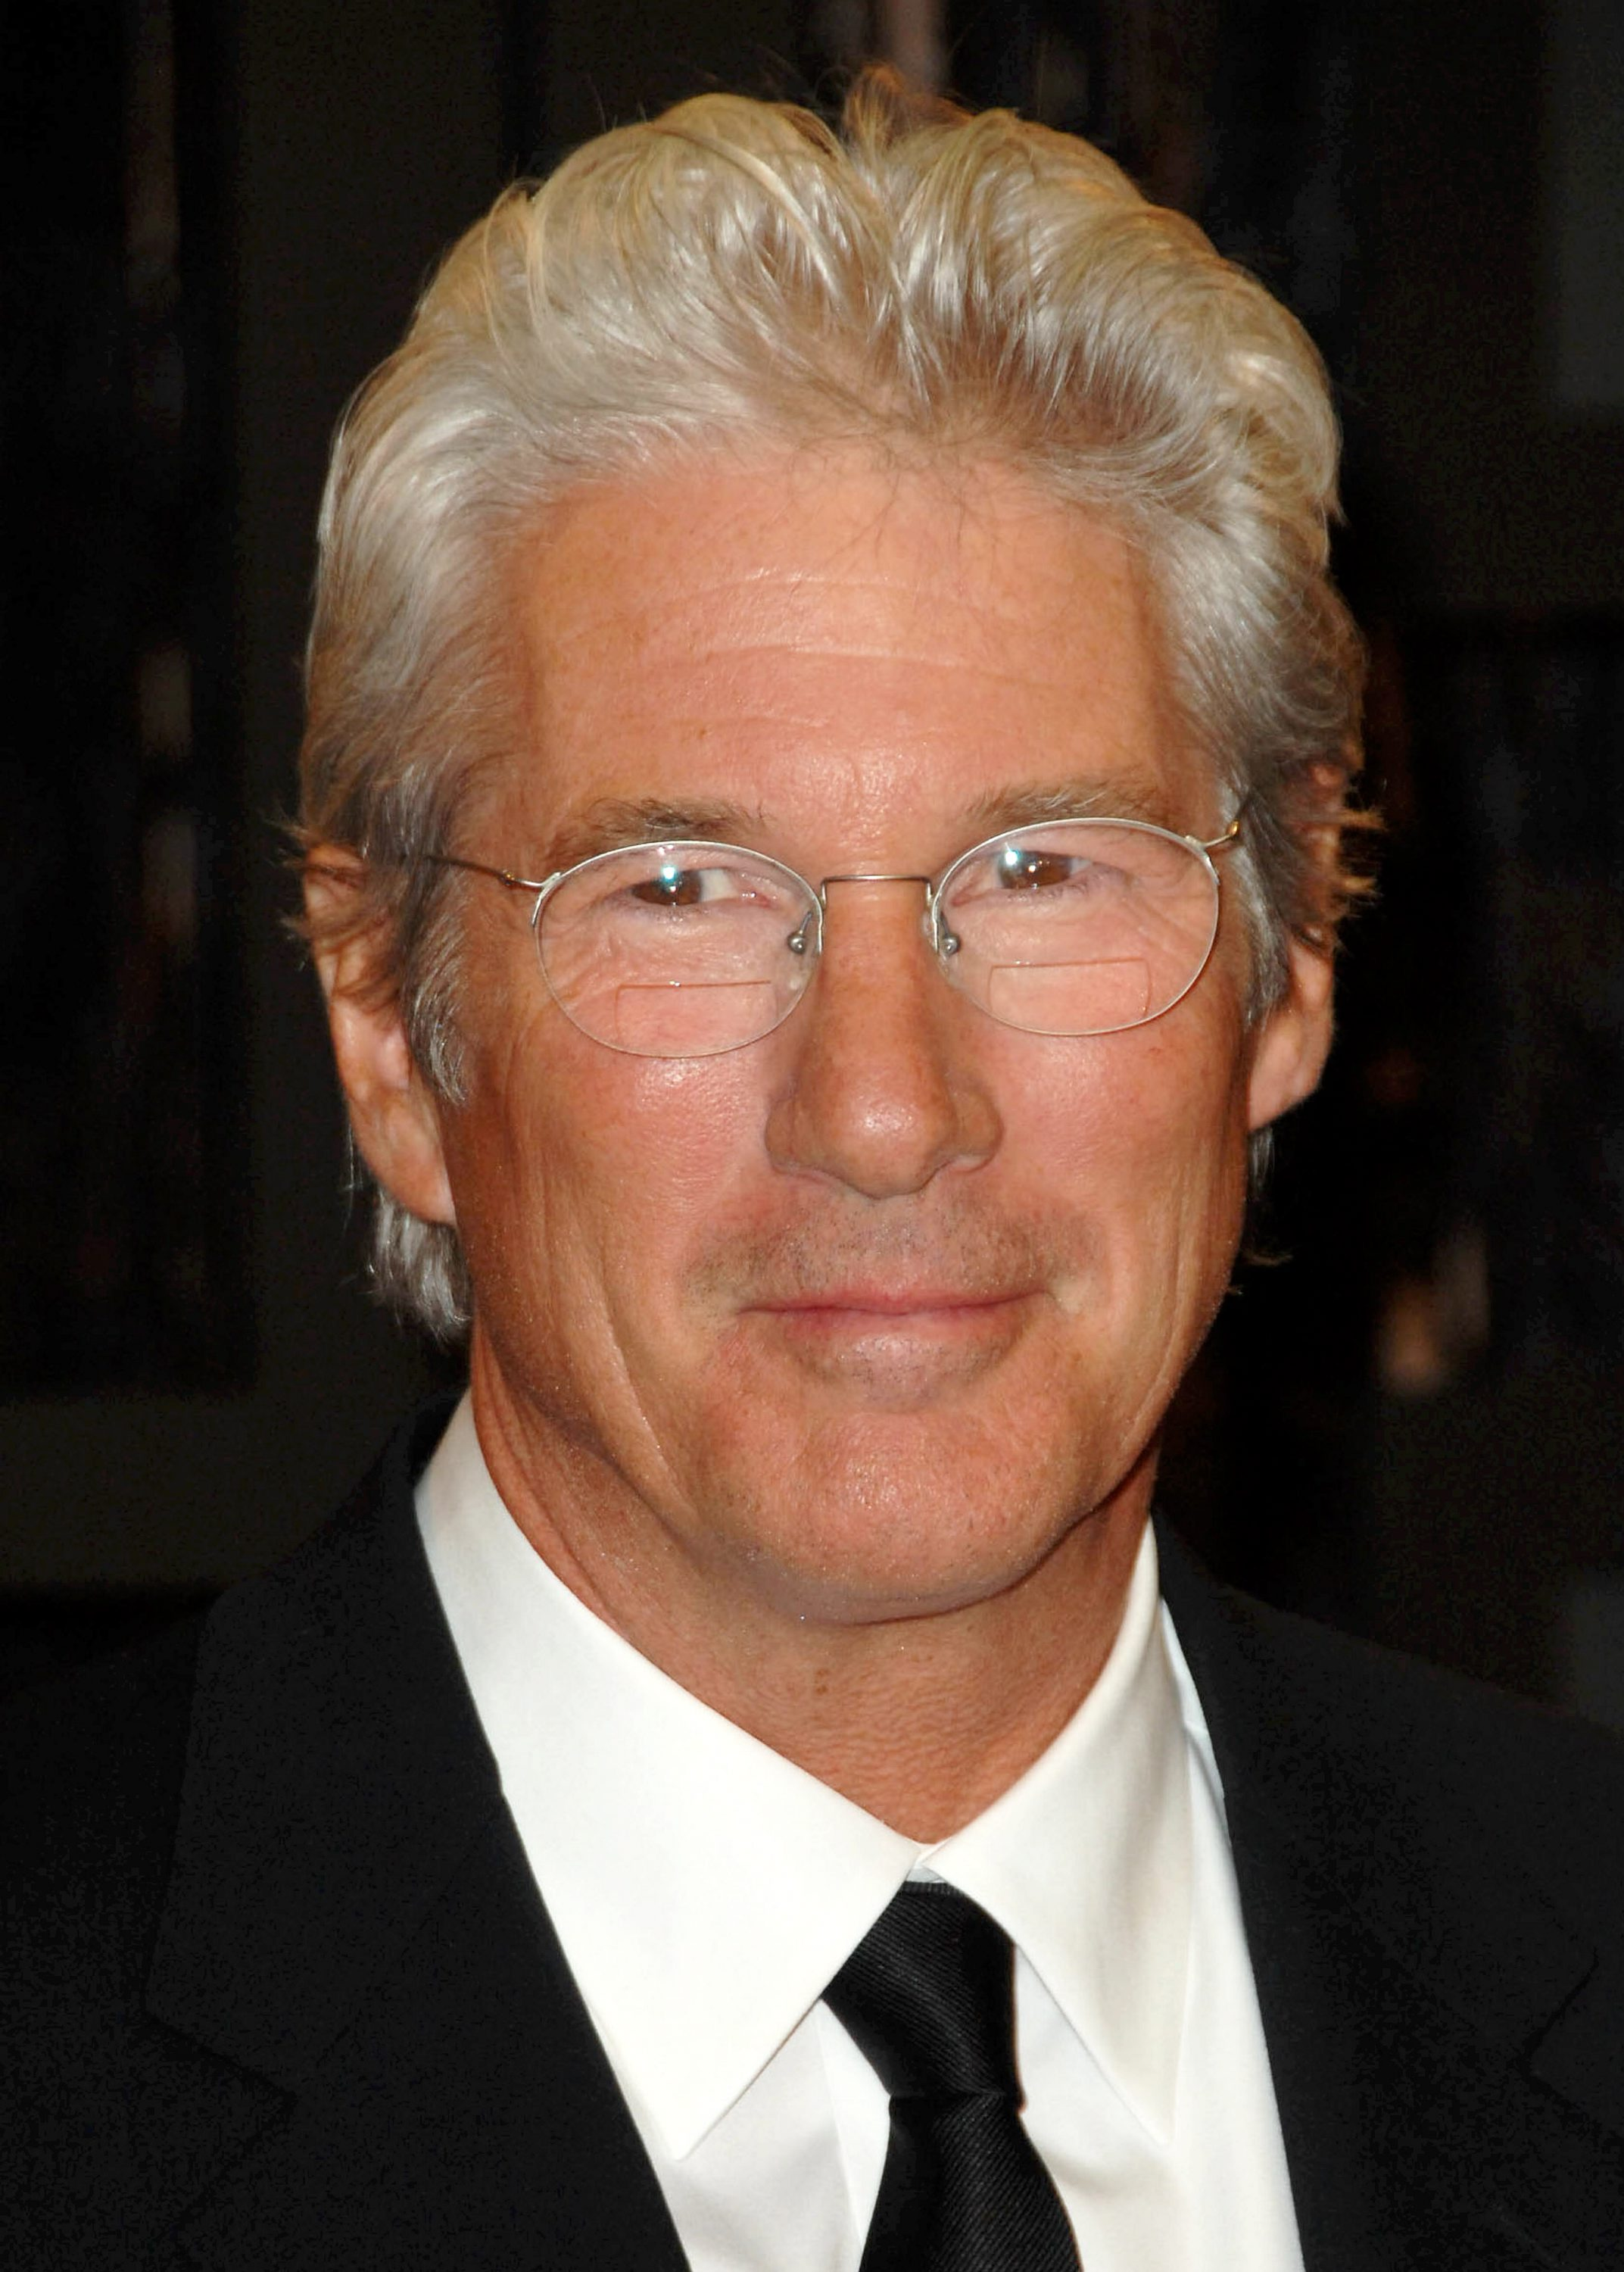 Richard Gere Wallpapers Pack Download